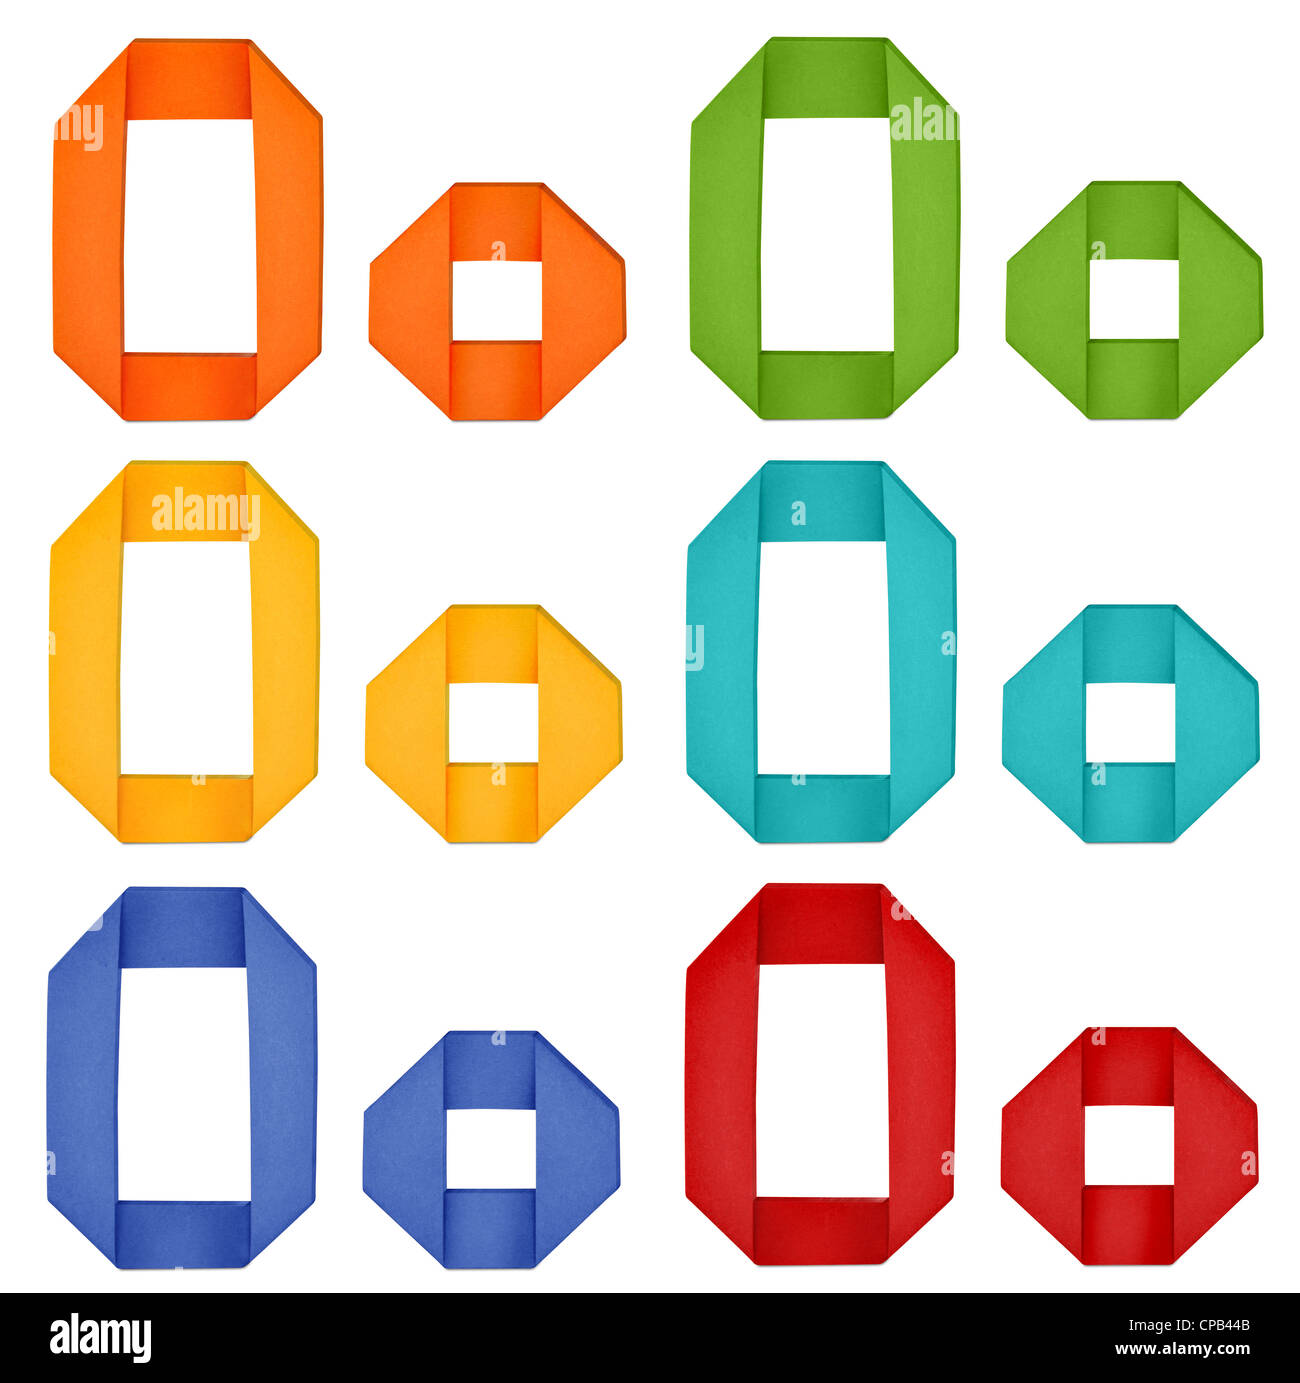 Set of capital letter and lowercase letter 'O' in various color. Origami alphabet letter on white background. - Stock Image